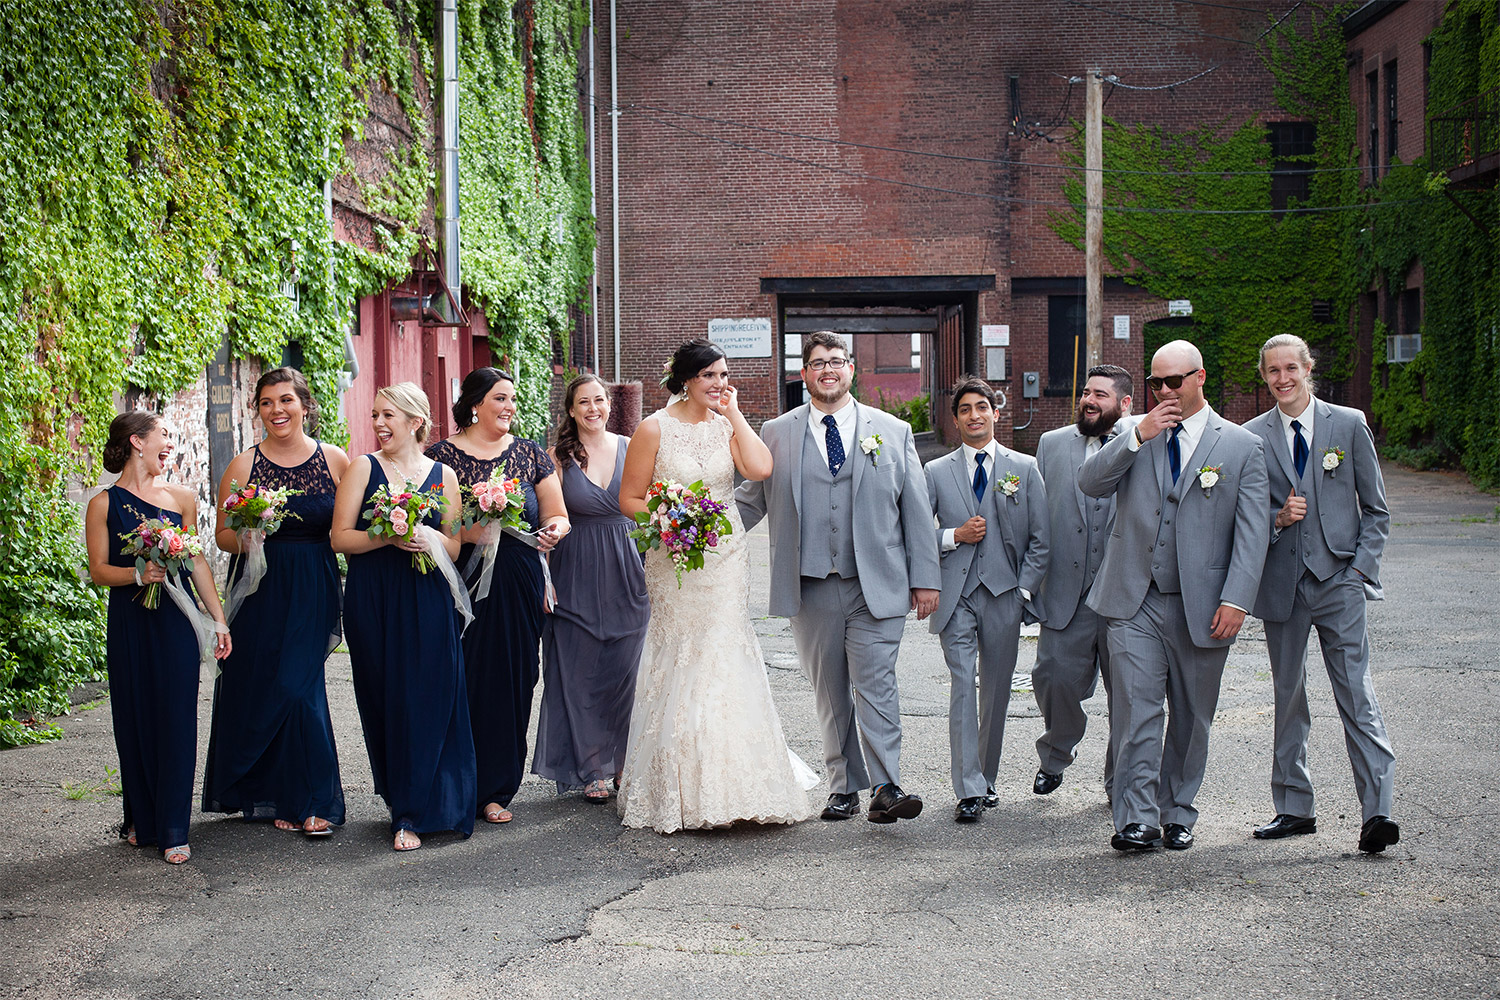 wedding party mill 1 at open square wedding jp langlands photography